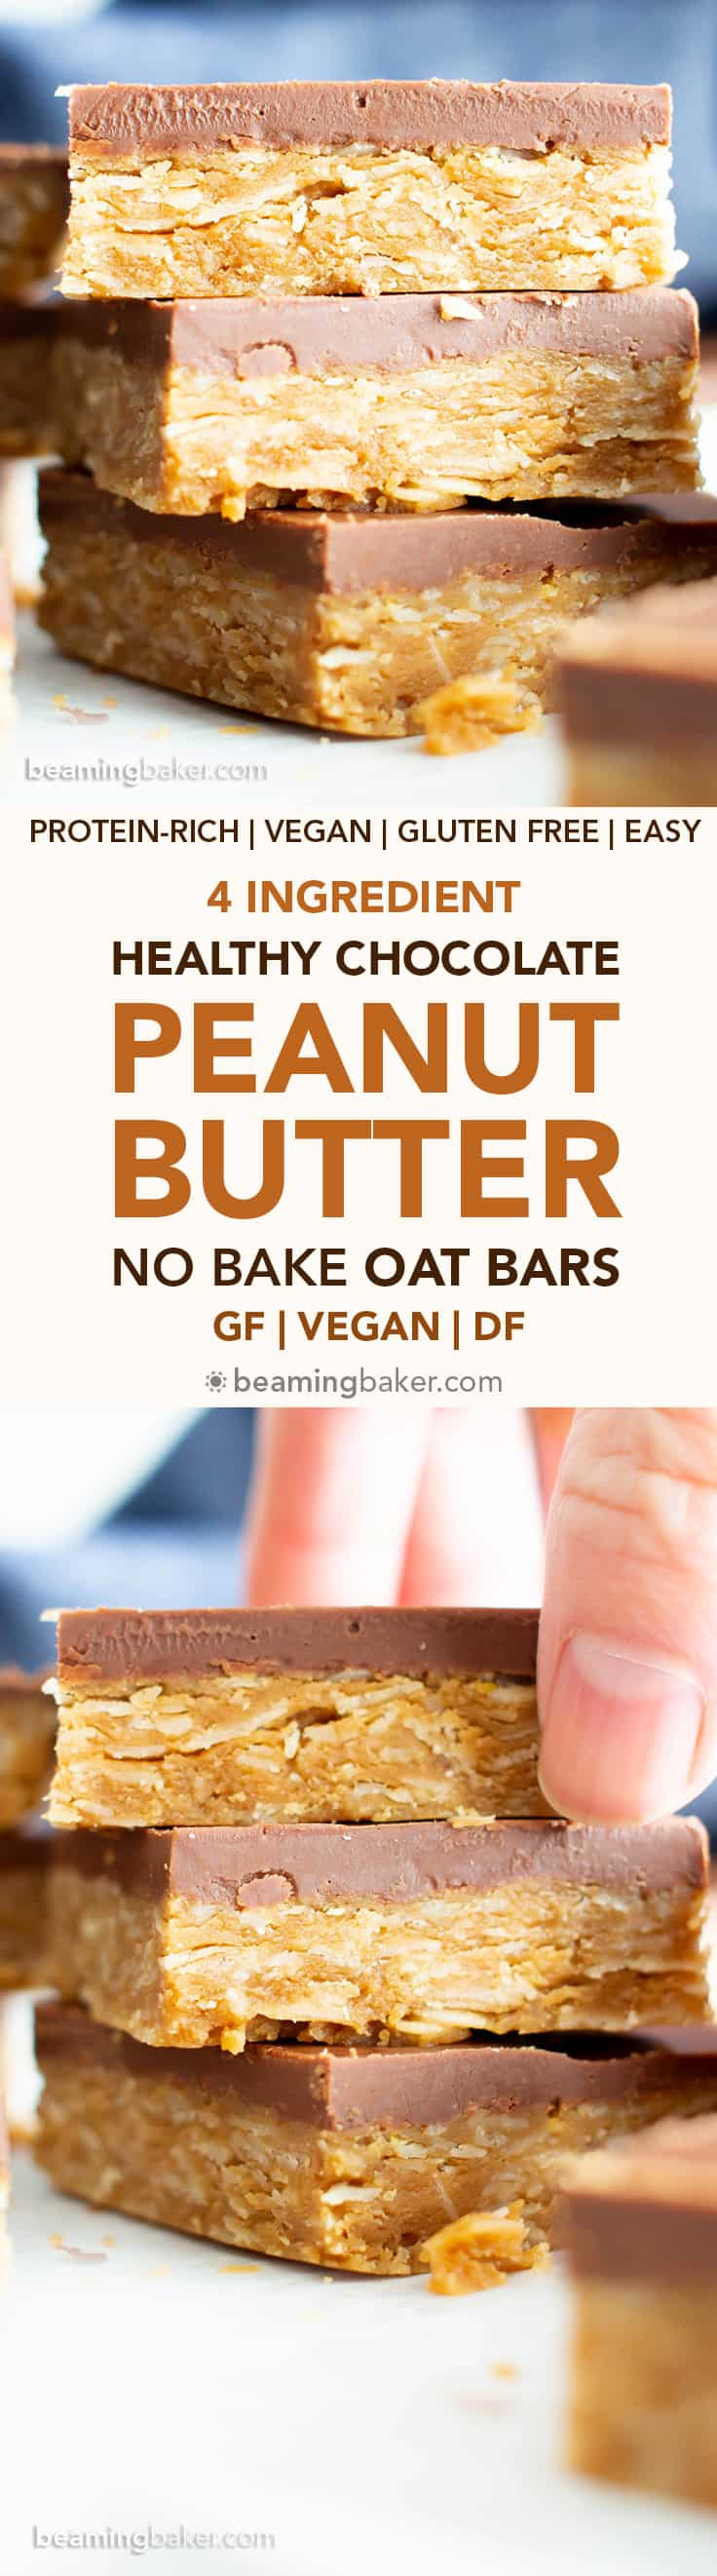 4 Ingredient Healthy No Bake Peanut Butter Cup Oat Bars: this vegan peanut butter oatmeal bars recipe is so easy to make & tastes like peanut butter cups! Chewy peanut butter oatmeal bars with a thick, chocolate topping. #Vegan #GlutenFree #Healthy #PeanutButter #Oats #Oatmeal | Recipe at BeamingBaker.com